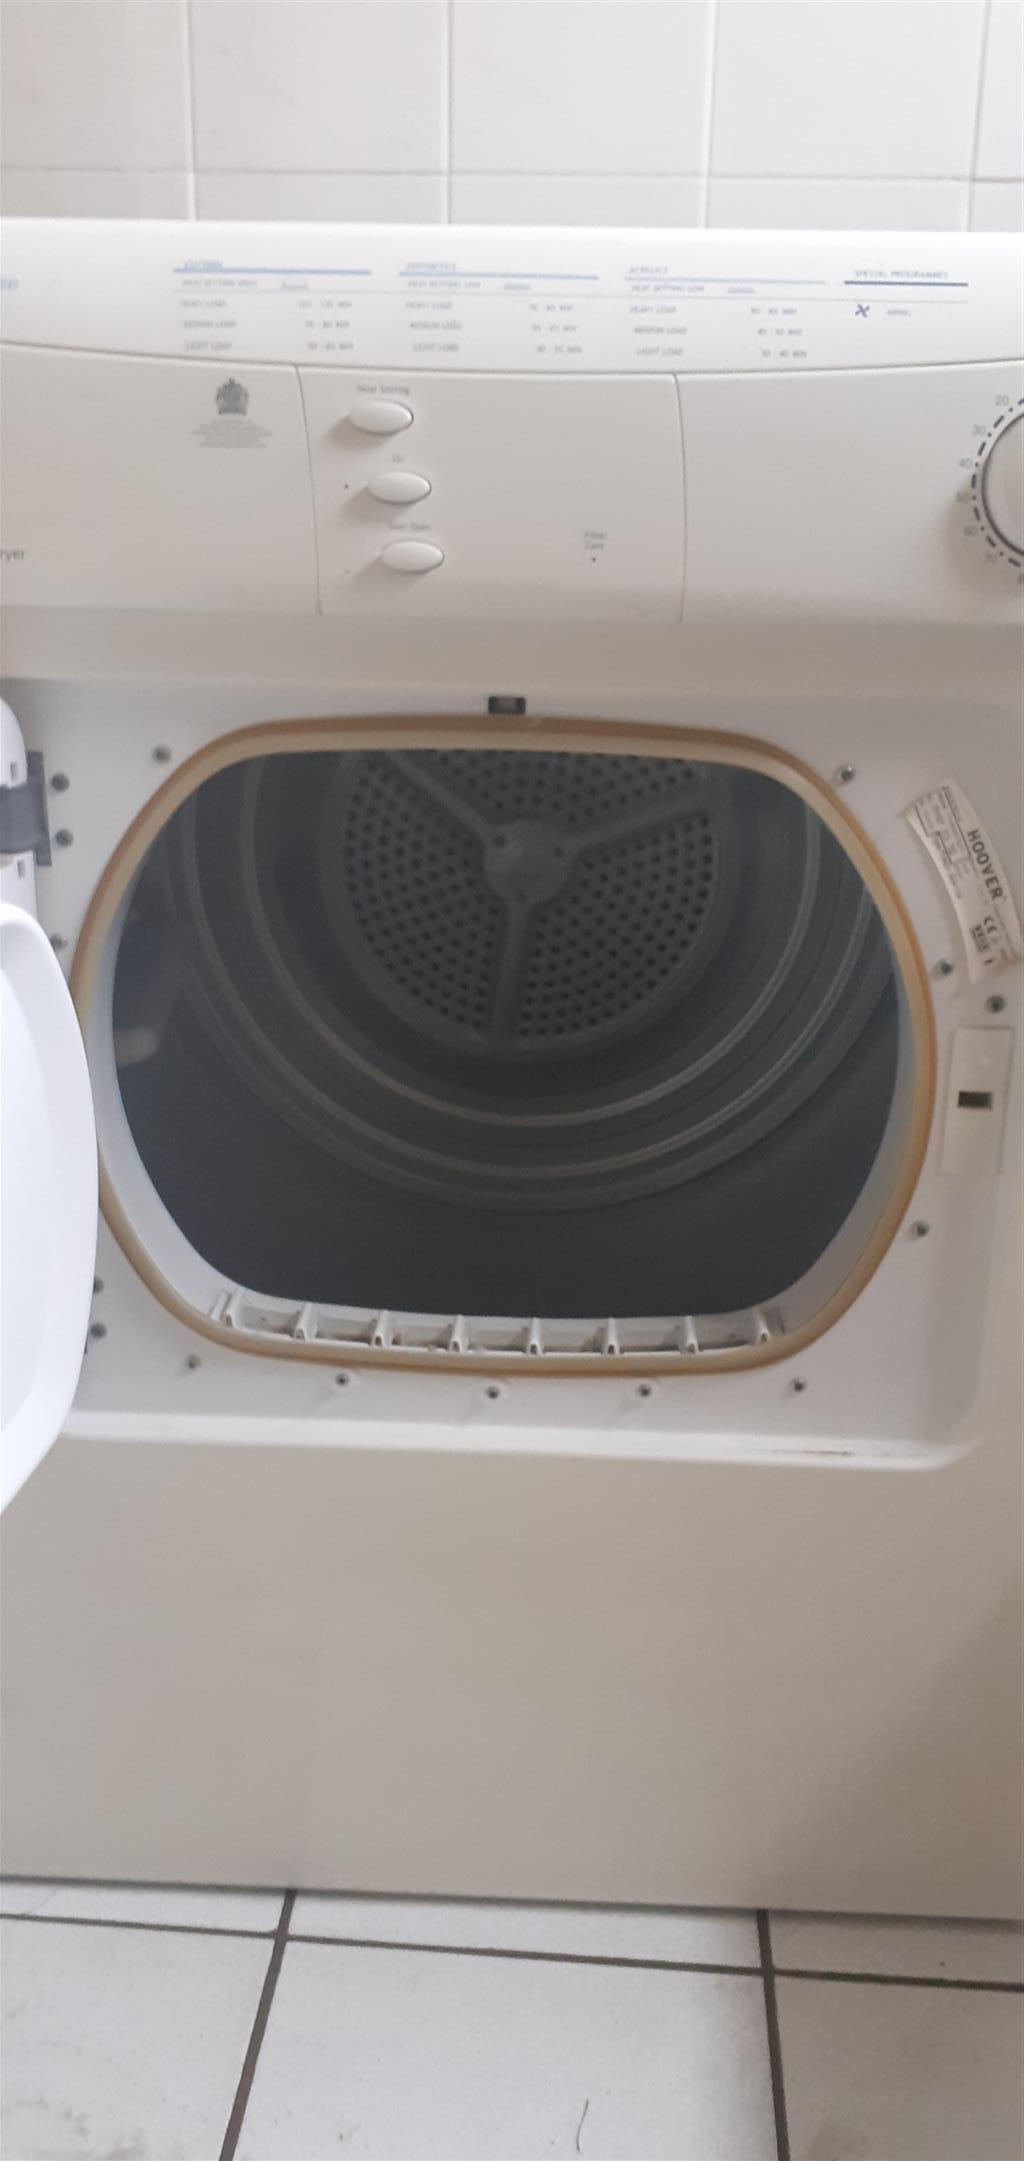 Hoover tumble dryer like new